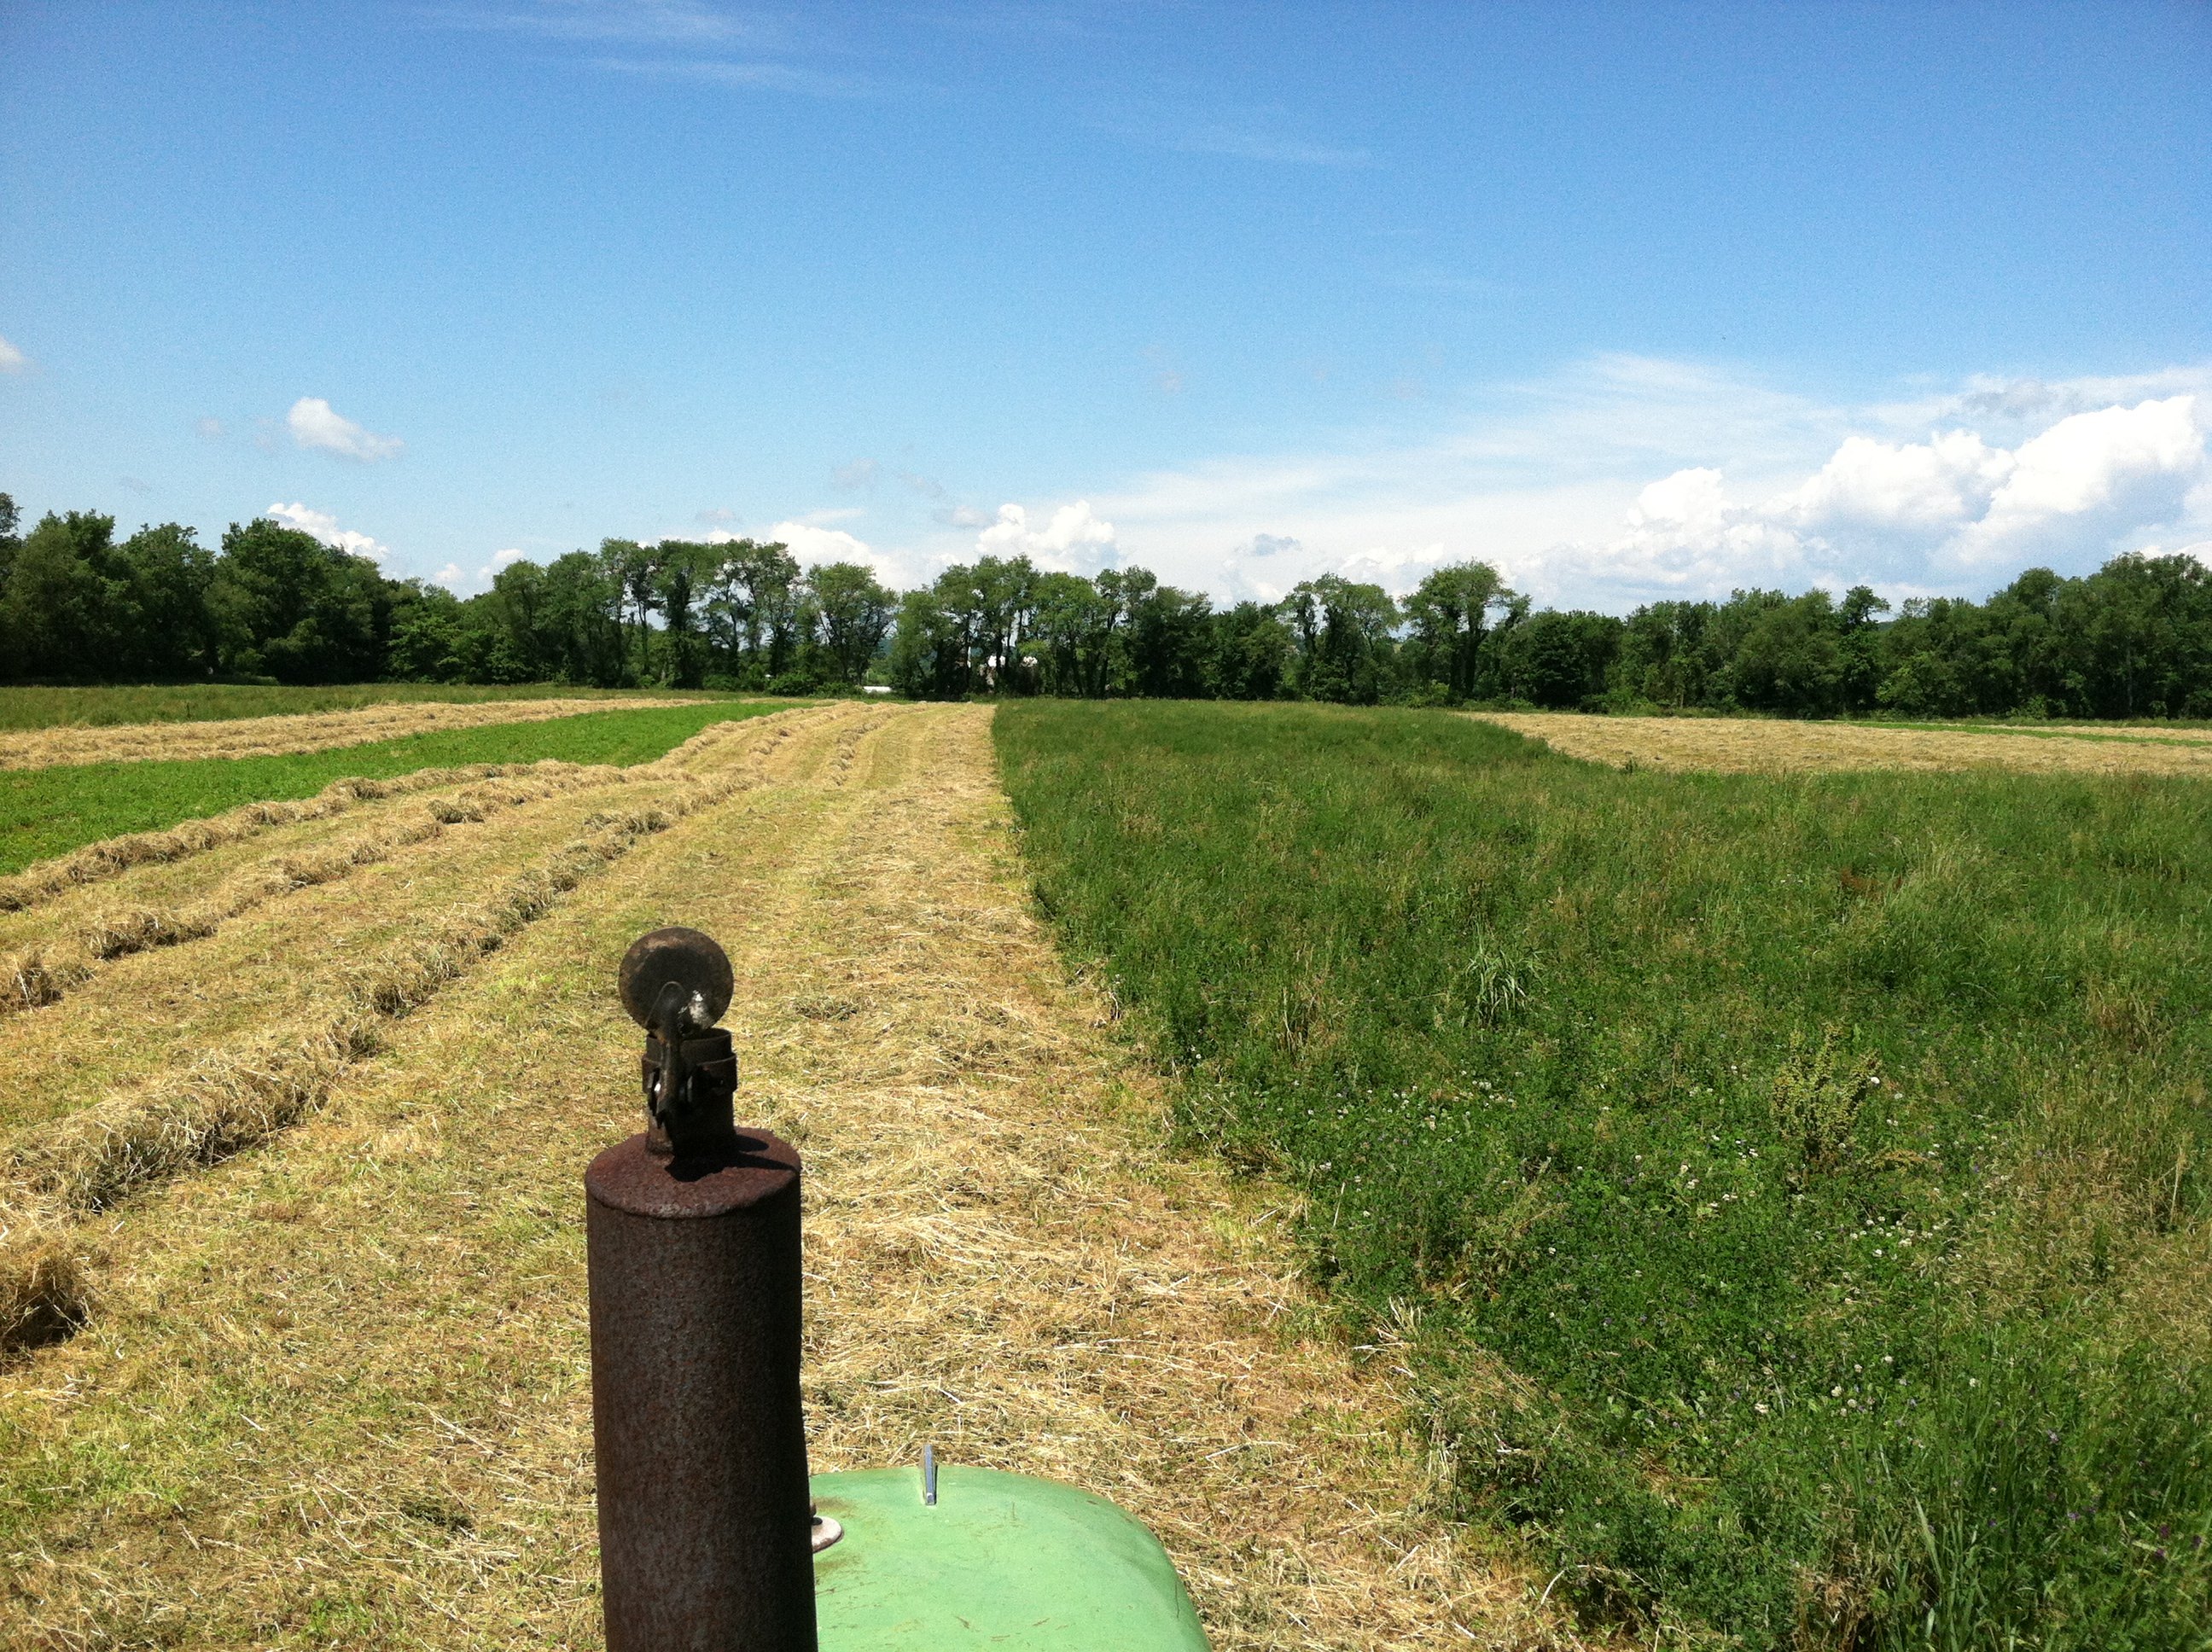 Chaseholm Farm - view from the tractor